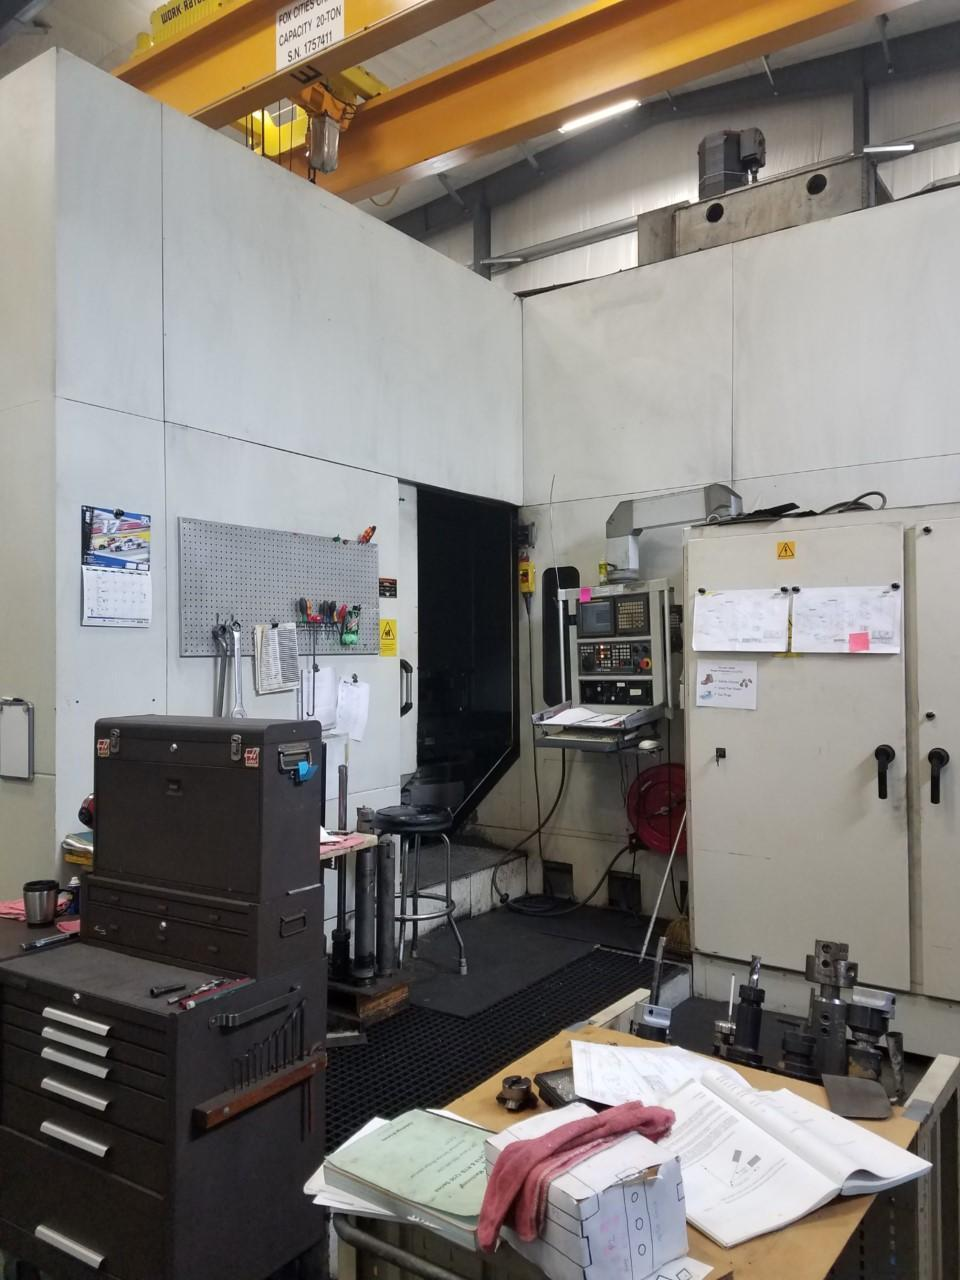 2007 GIDDINGS & LEWIS HMC 410 HORIZONTAL MACHINING CENTER